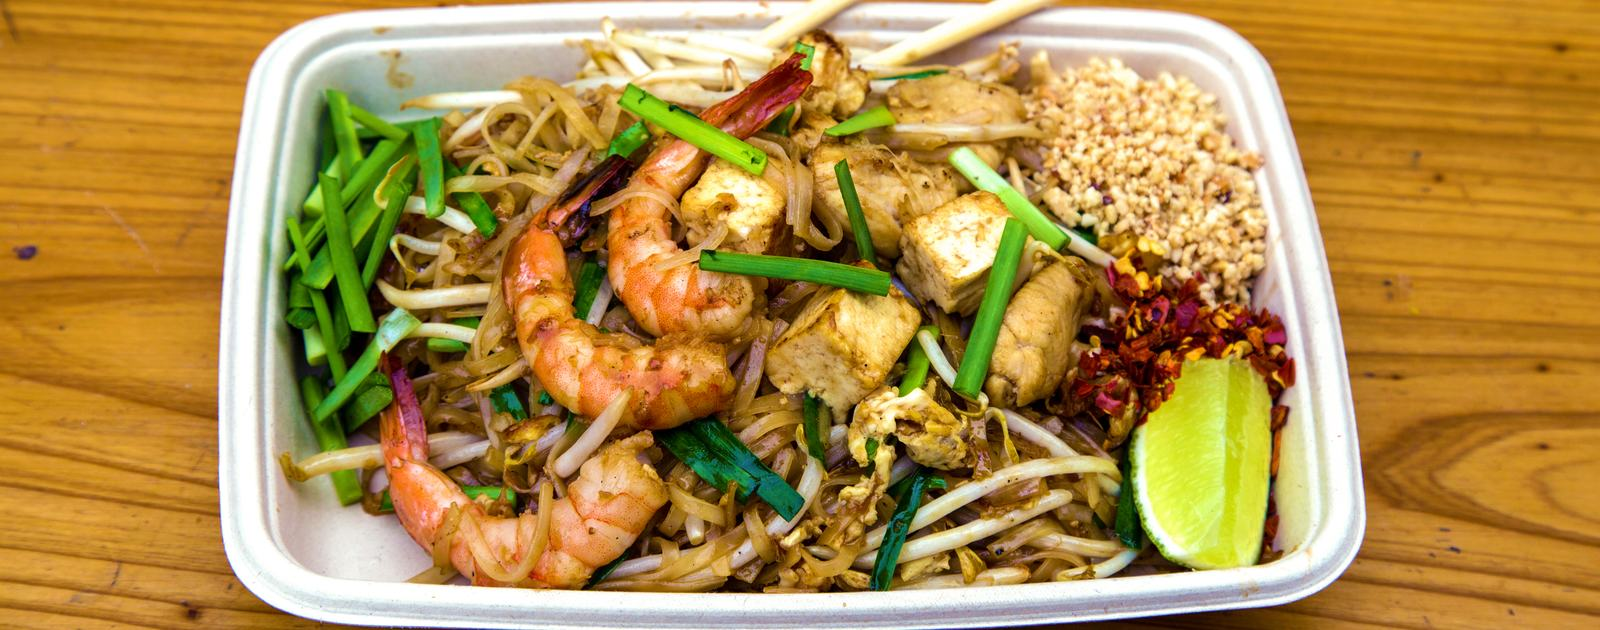 Photo of a plate of pad Thai as served by PAD+SEN at Southbank Centre Food Market